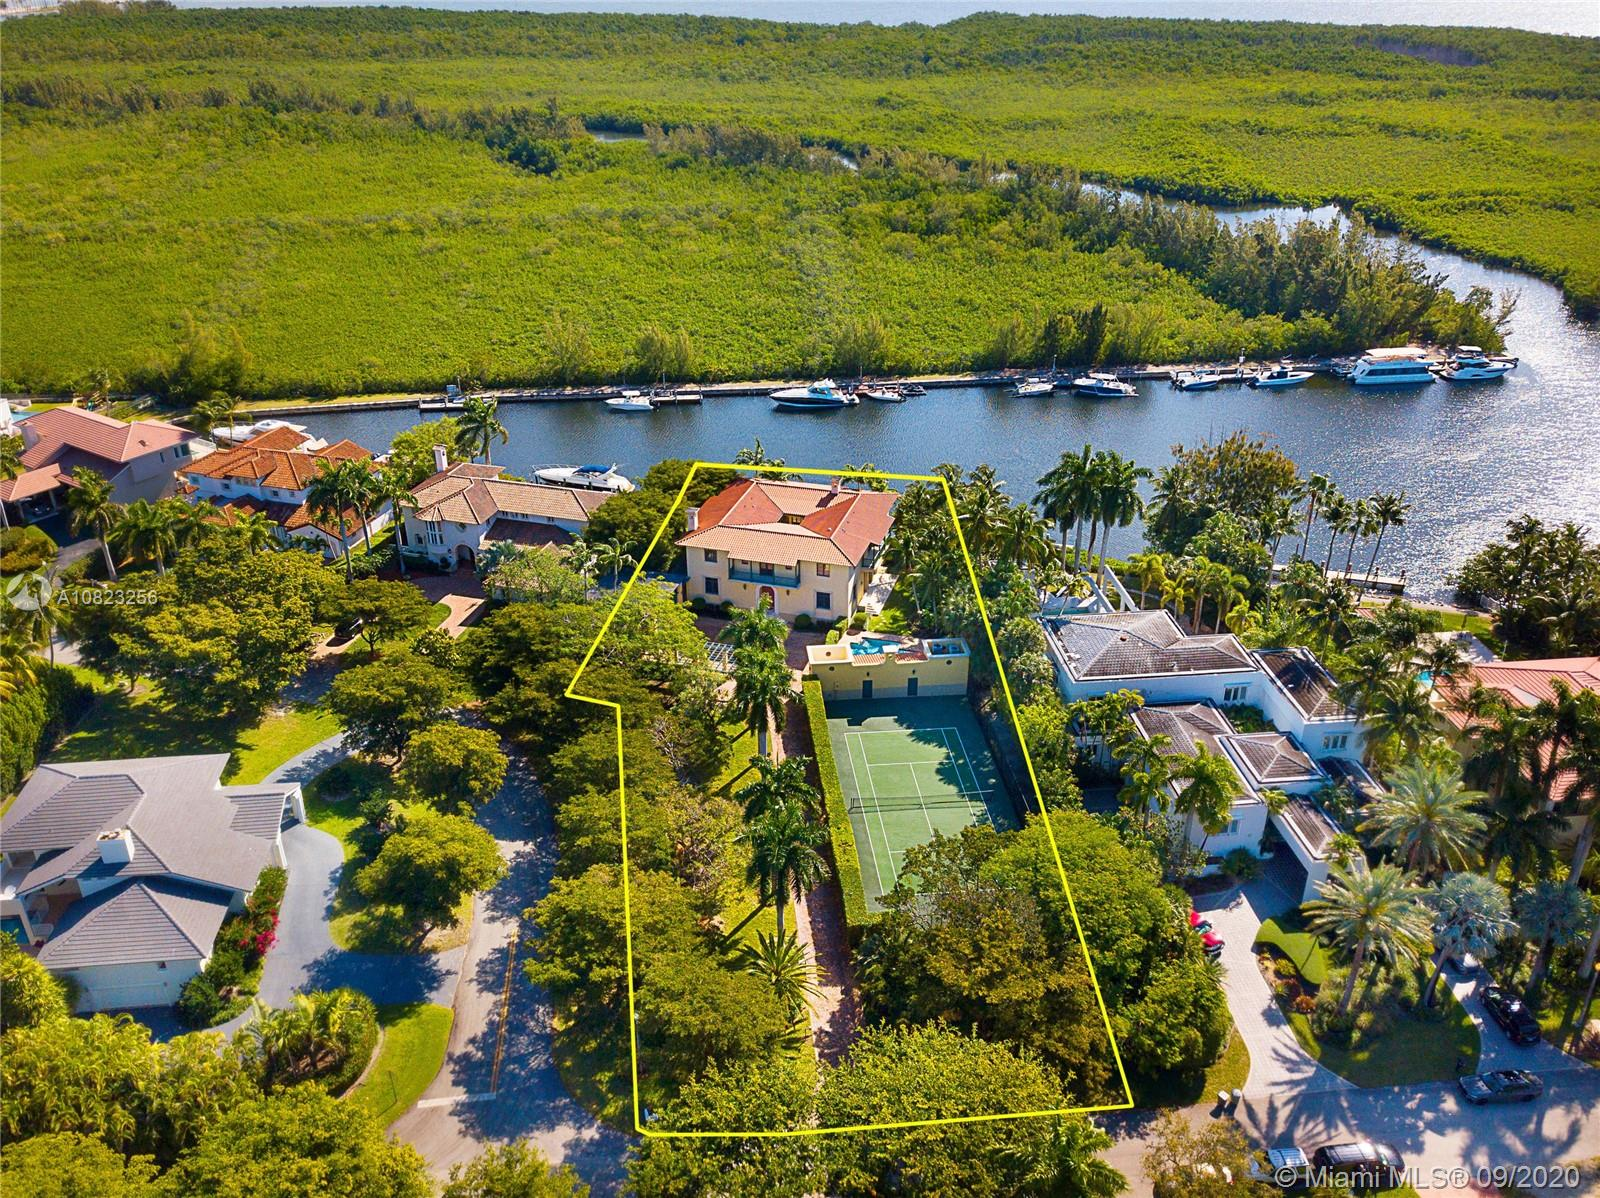 Custom-built waterfront home ideally located in the guard gated community of Hammock Oaks. Situated on a 40,000-SF lot with gorgeous views of protected Matheson Hammock, & only 1 bridge to the bay. Beautifully designed with grand spaces, 12' ceilings, living room with fireplace, dining room, eat-in kitchen, romantic courtyard, & great room running the entire back of the house facing the water views. This majestic estate offers 6 spacious bedrooms, & 5.5-baths, including a guest bed downstairs, 4 bedrooms upstairs, & generous master suite with water views, sitting room with fireplace, private balcony, large walk-in closet, & bonus gym off master that can be turned into 7th bedroom. Outside, 36' dock, tennis court, pool, cabana bath, covered terrace, long private driveway & 2-car garage.